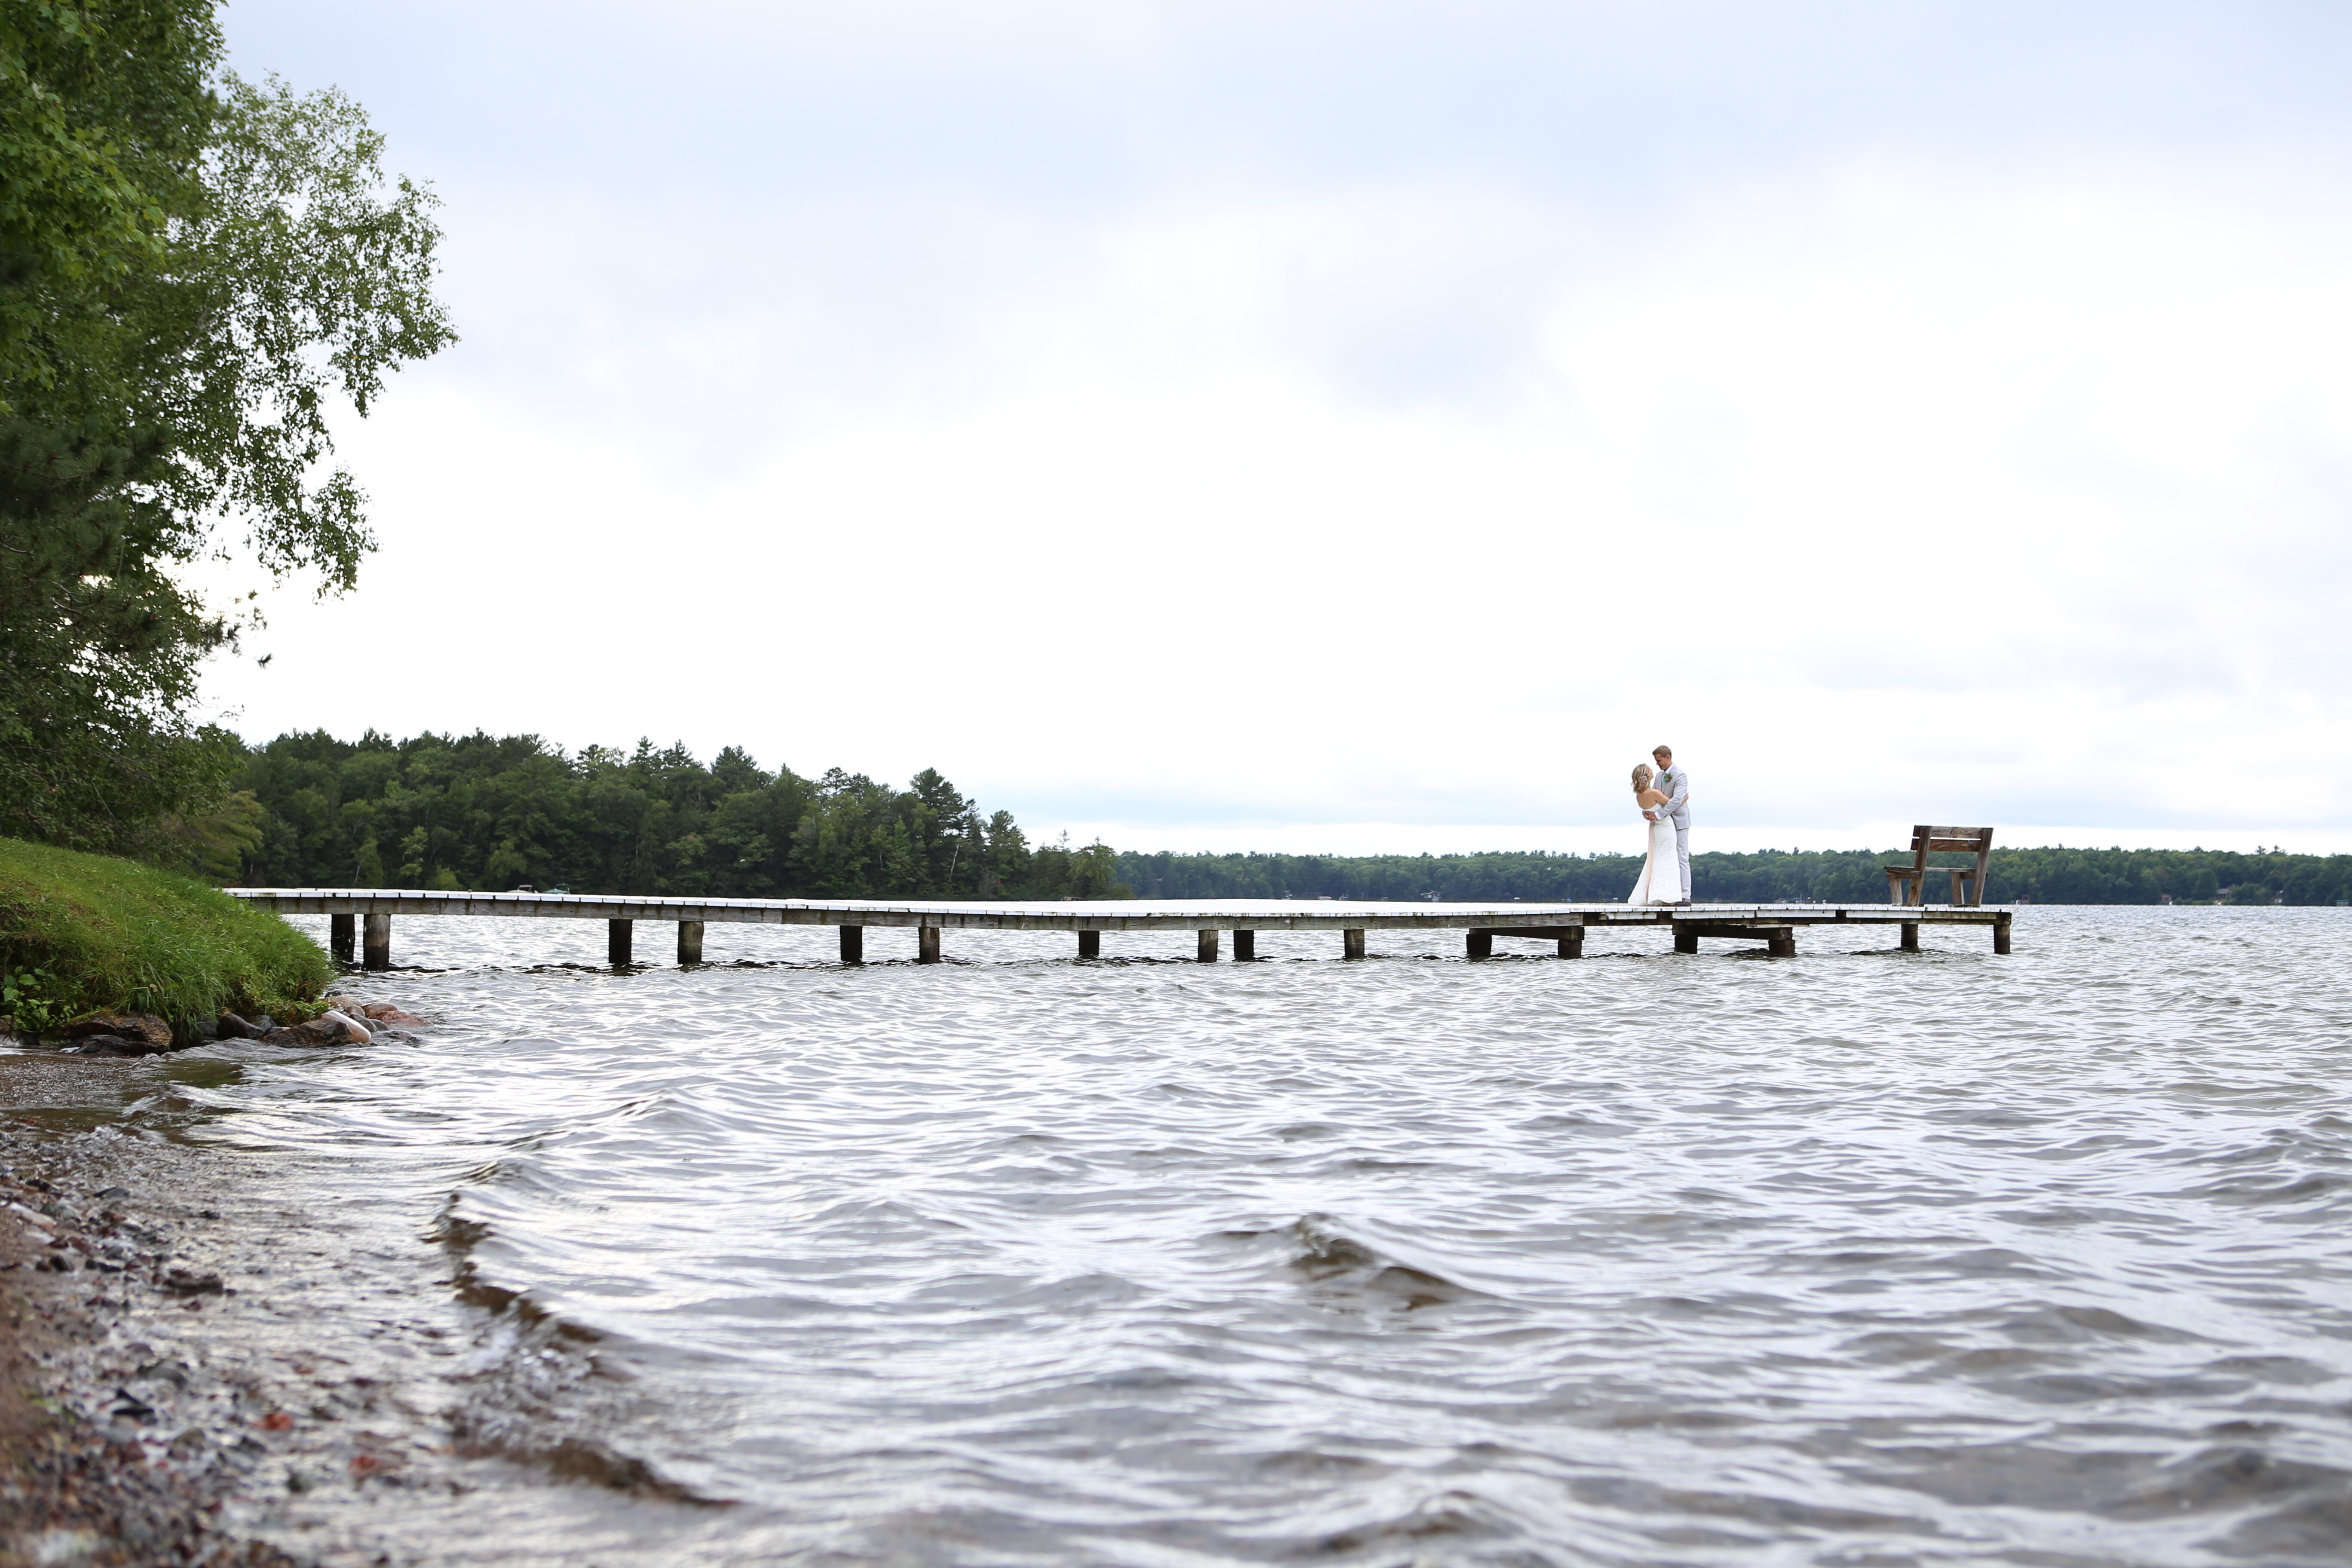 lac du flambeau single jewish girls The place with the highest percent of men who have never been married in the area is lac du flambeau with a men who have  minocqua, wi single women in area.